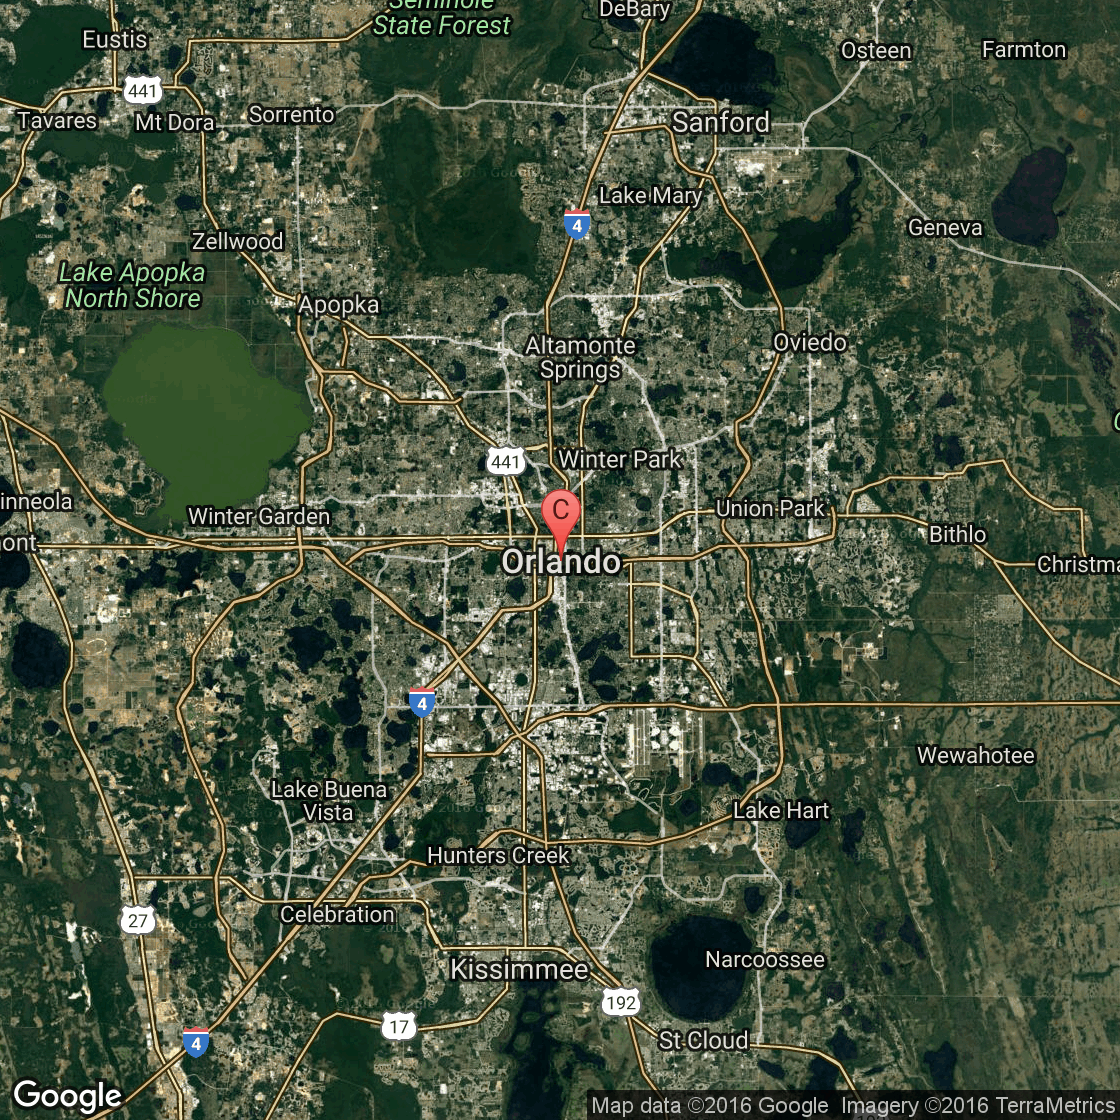 hotels along highway 429 in florida usa today